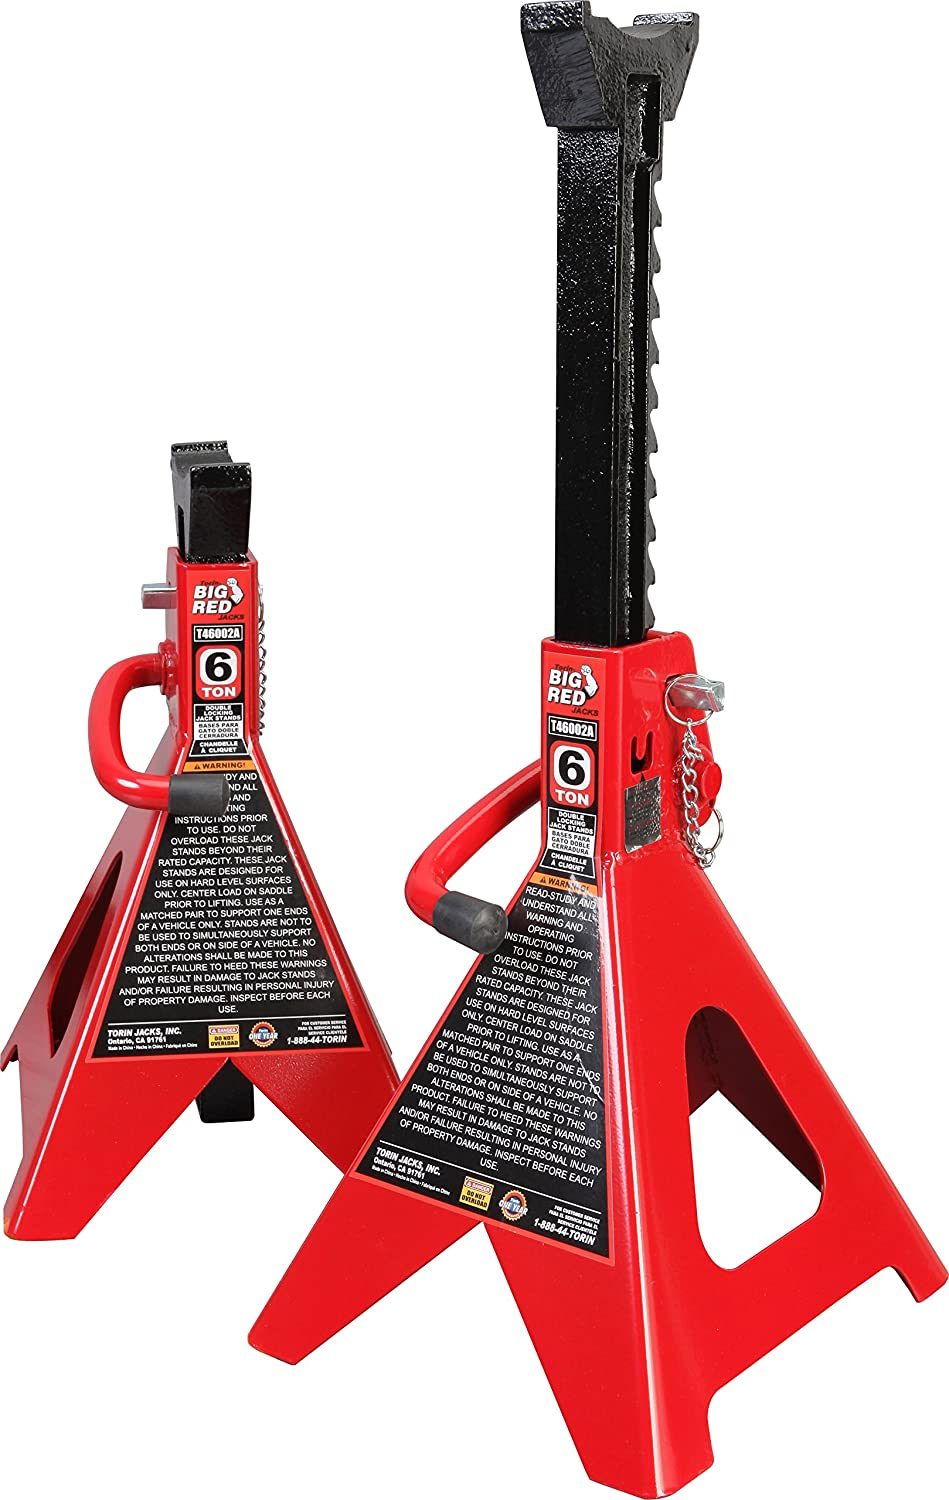 Torin T46002A Big Red Steel Jack Stands: Double Locking, 6 Ton Capacity, 1 Pair